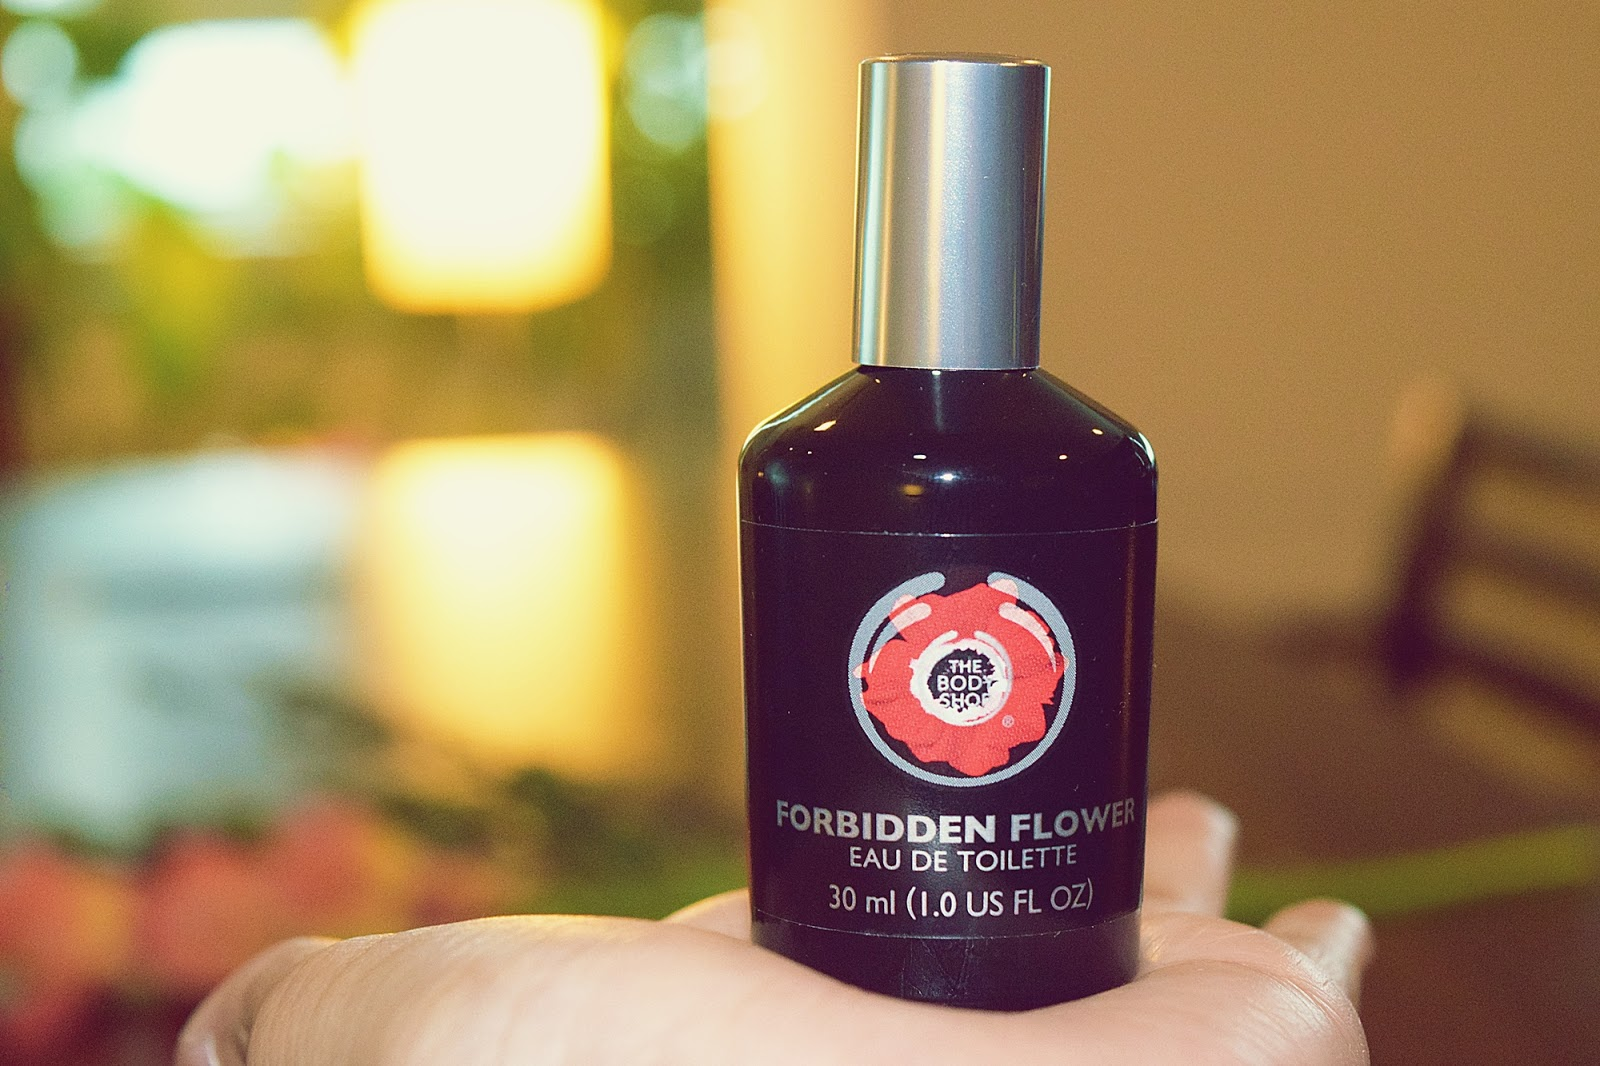 Forbidden Flower Eau de Toilette by The Body Shop